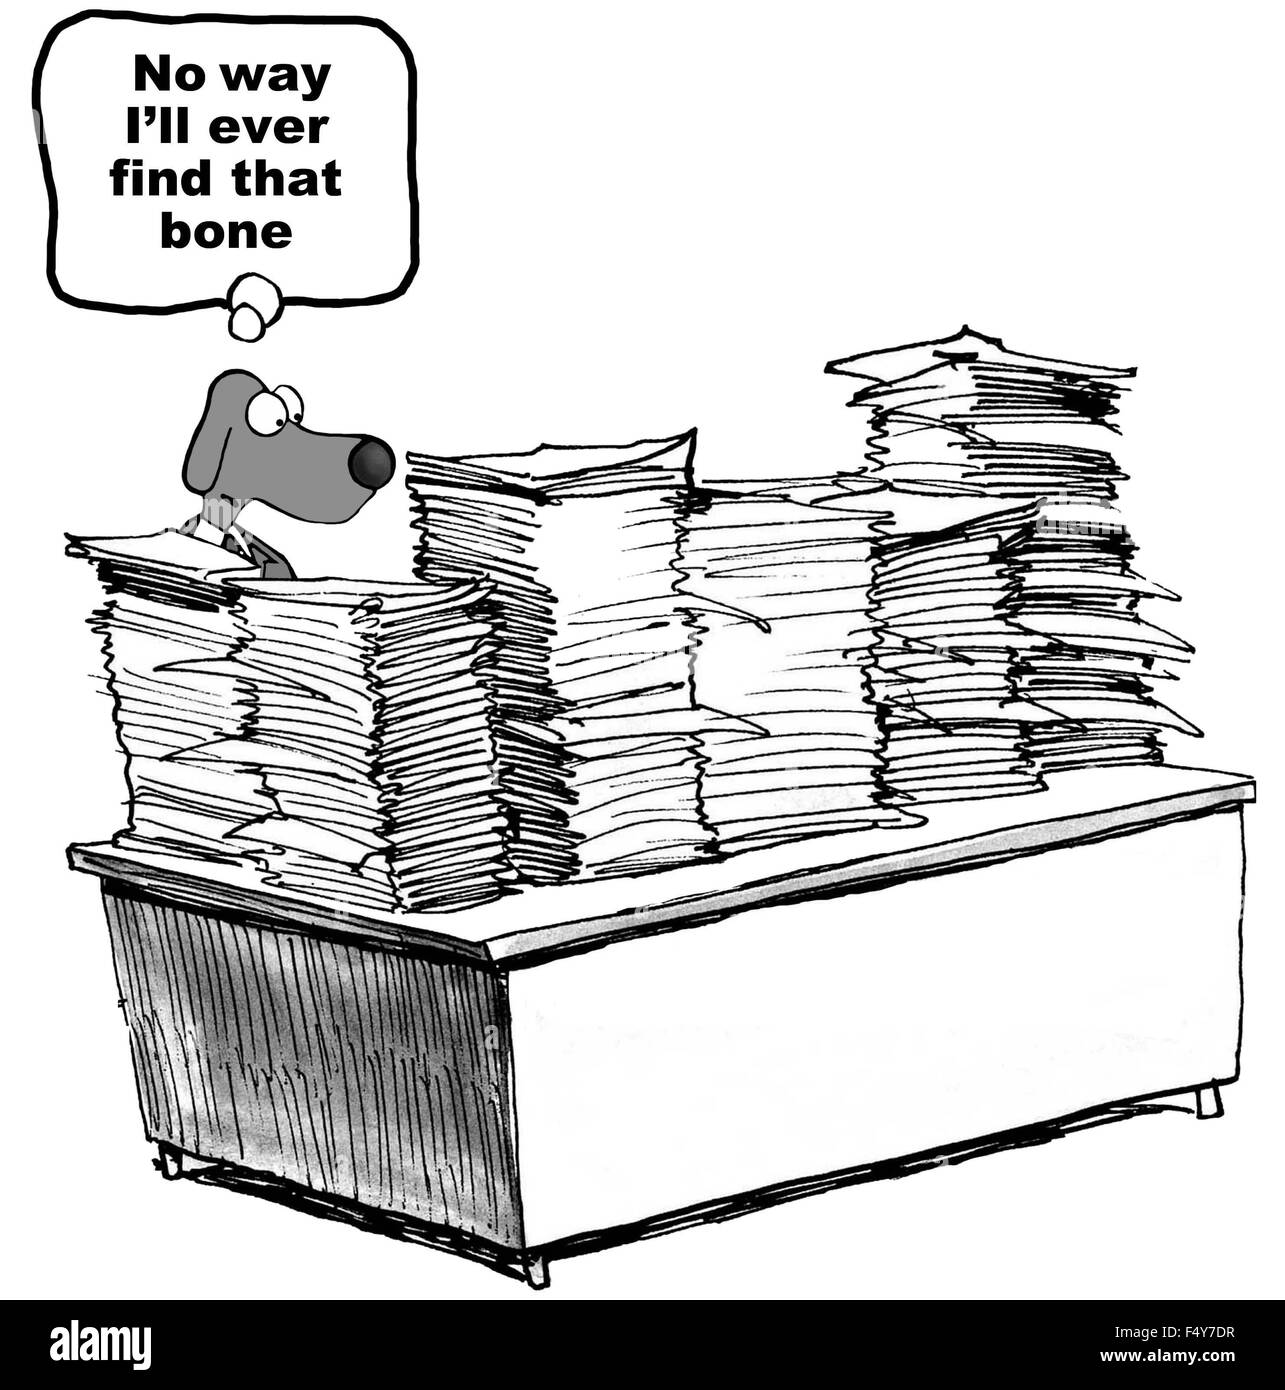 Outstanding Business Cartoon Showing Dog At Desk Stacked High With Download Free Architecture Designs Scobabritishbridgeorg